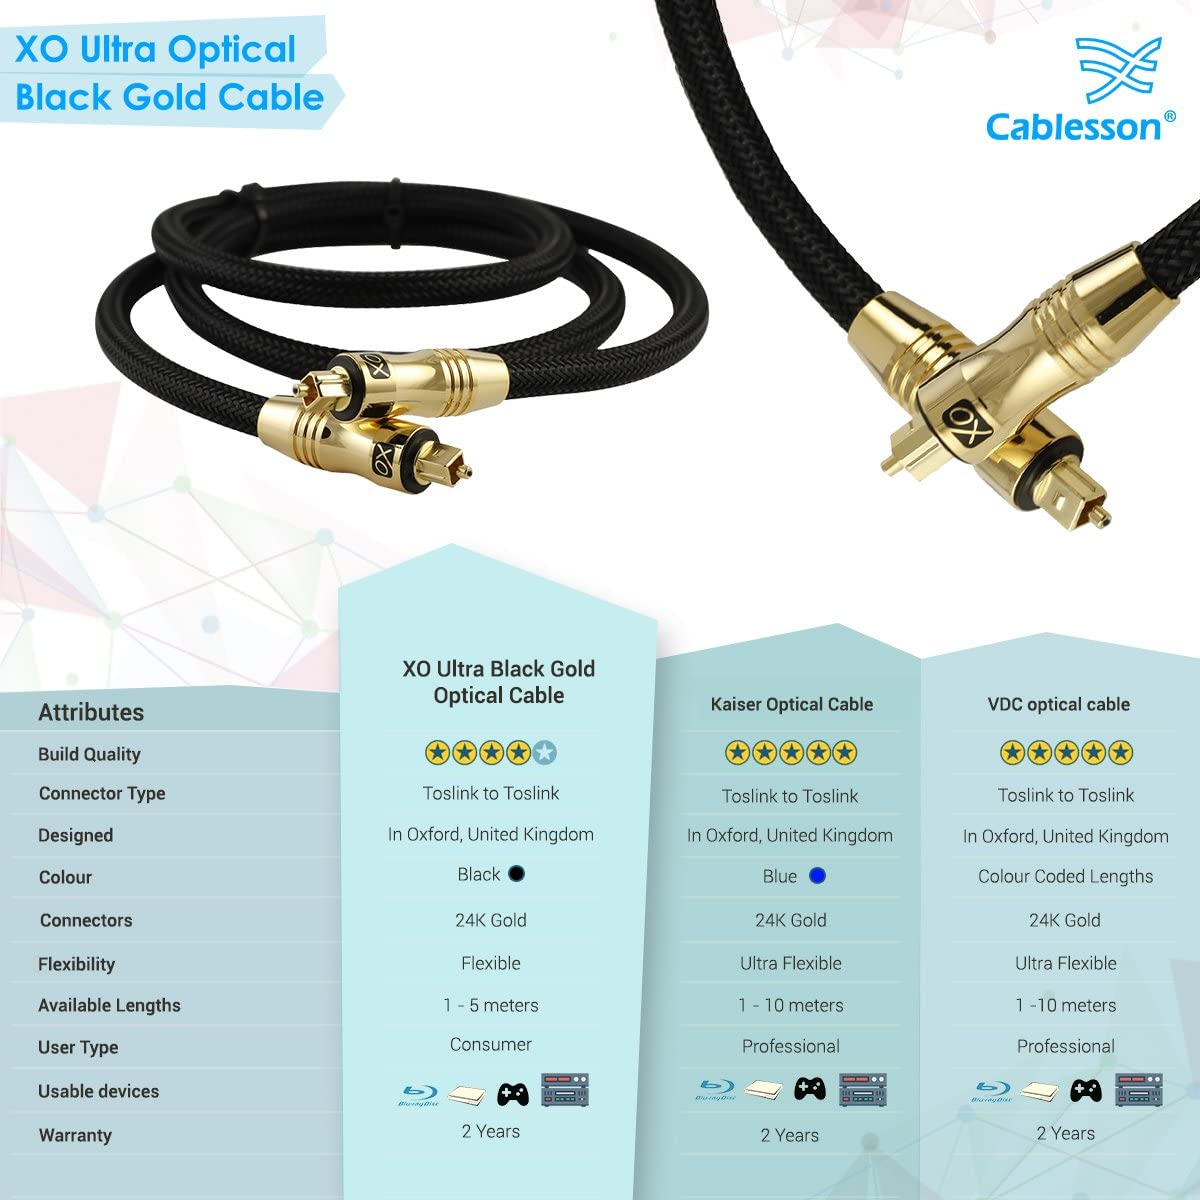 HDtvs XO 2m Ultra High Resolution Professional Digital Optical Black TOSlink Gold Cable Blu-rays Compatible with PS3,Sky HD AV AmpsSuperior-grade optical fiber to deliver better clarity and transfer digital signal. 24k Gold Casing